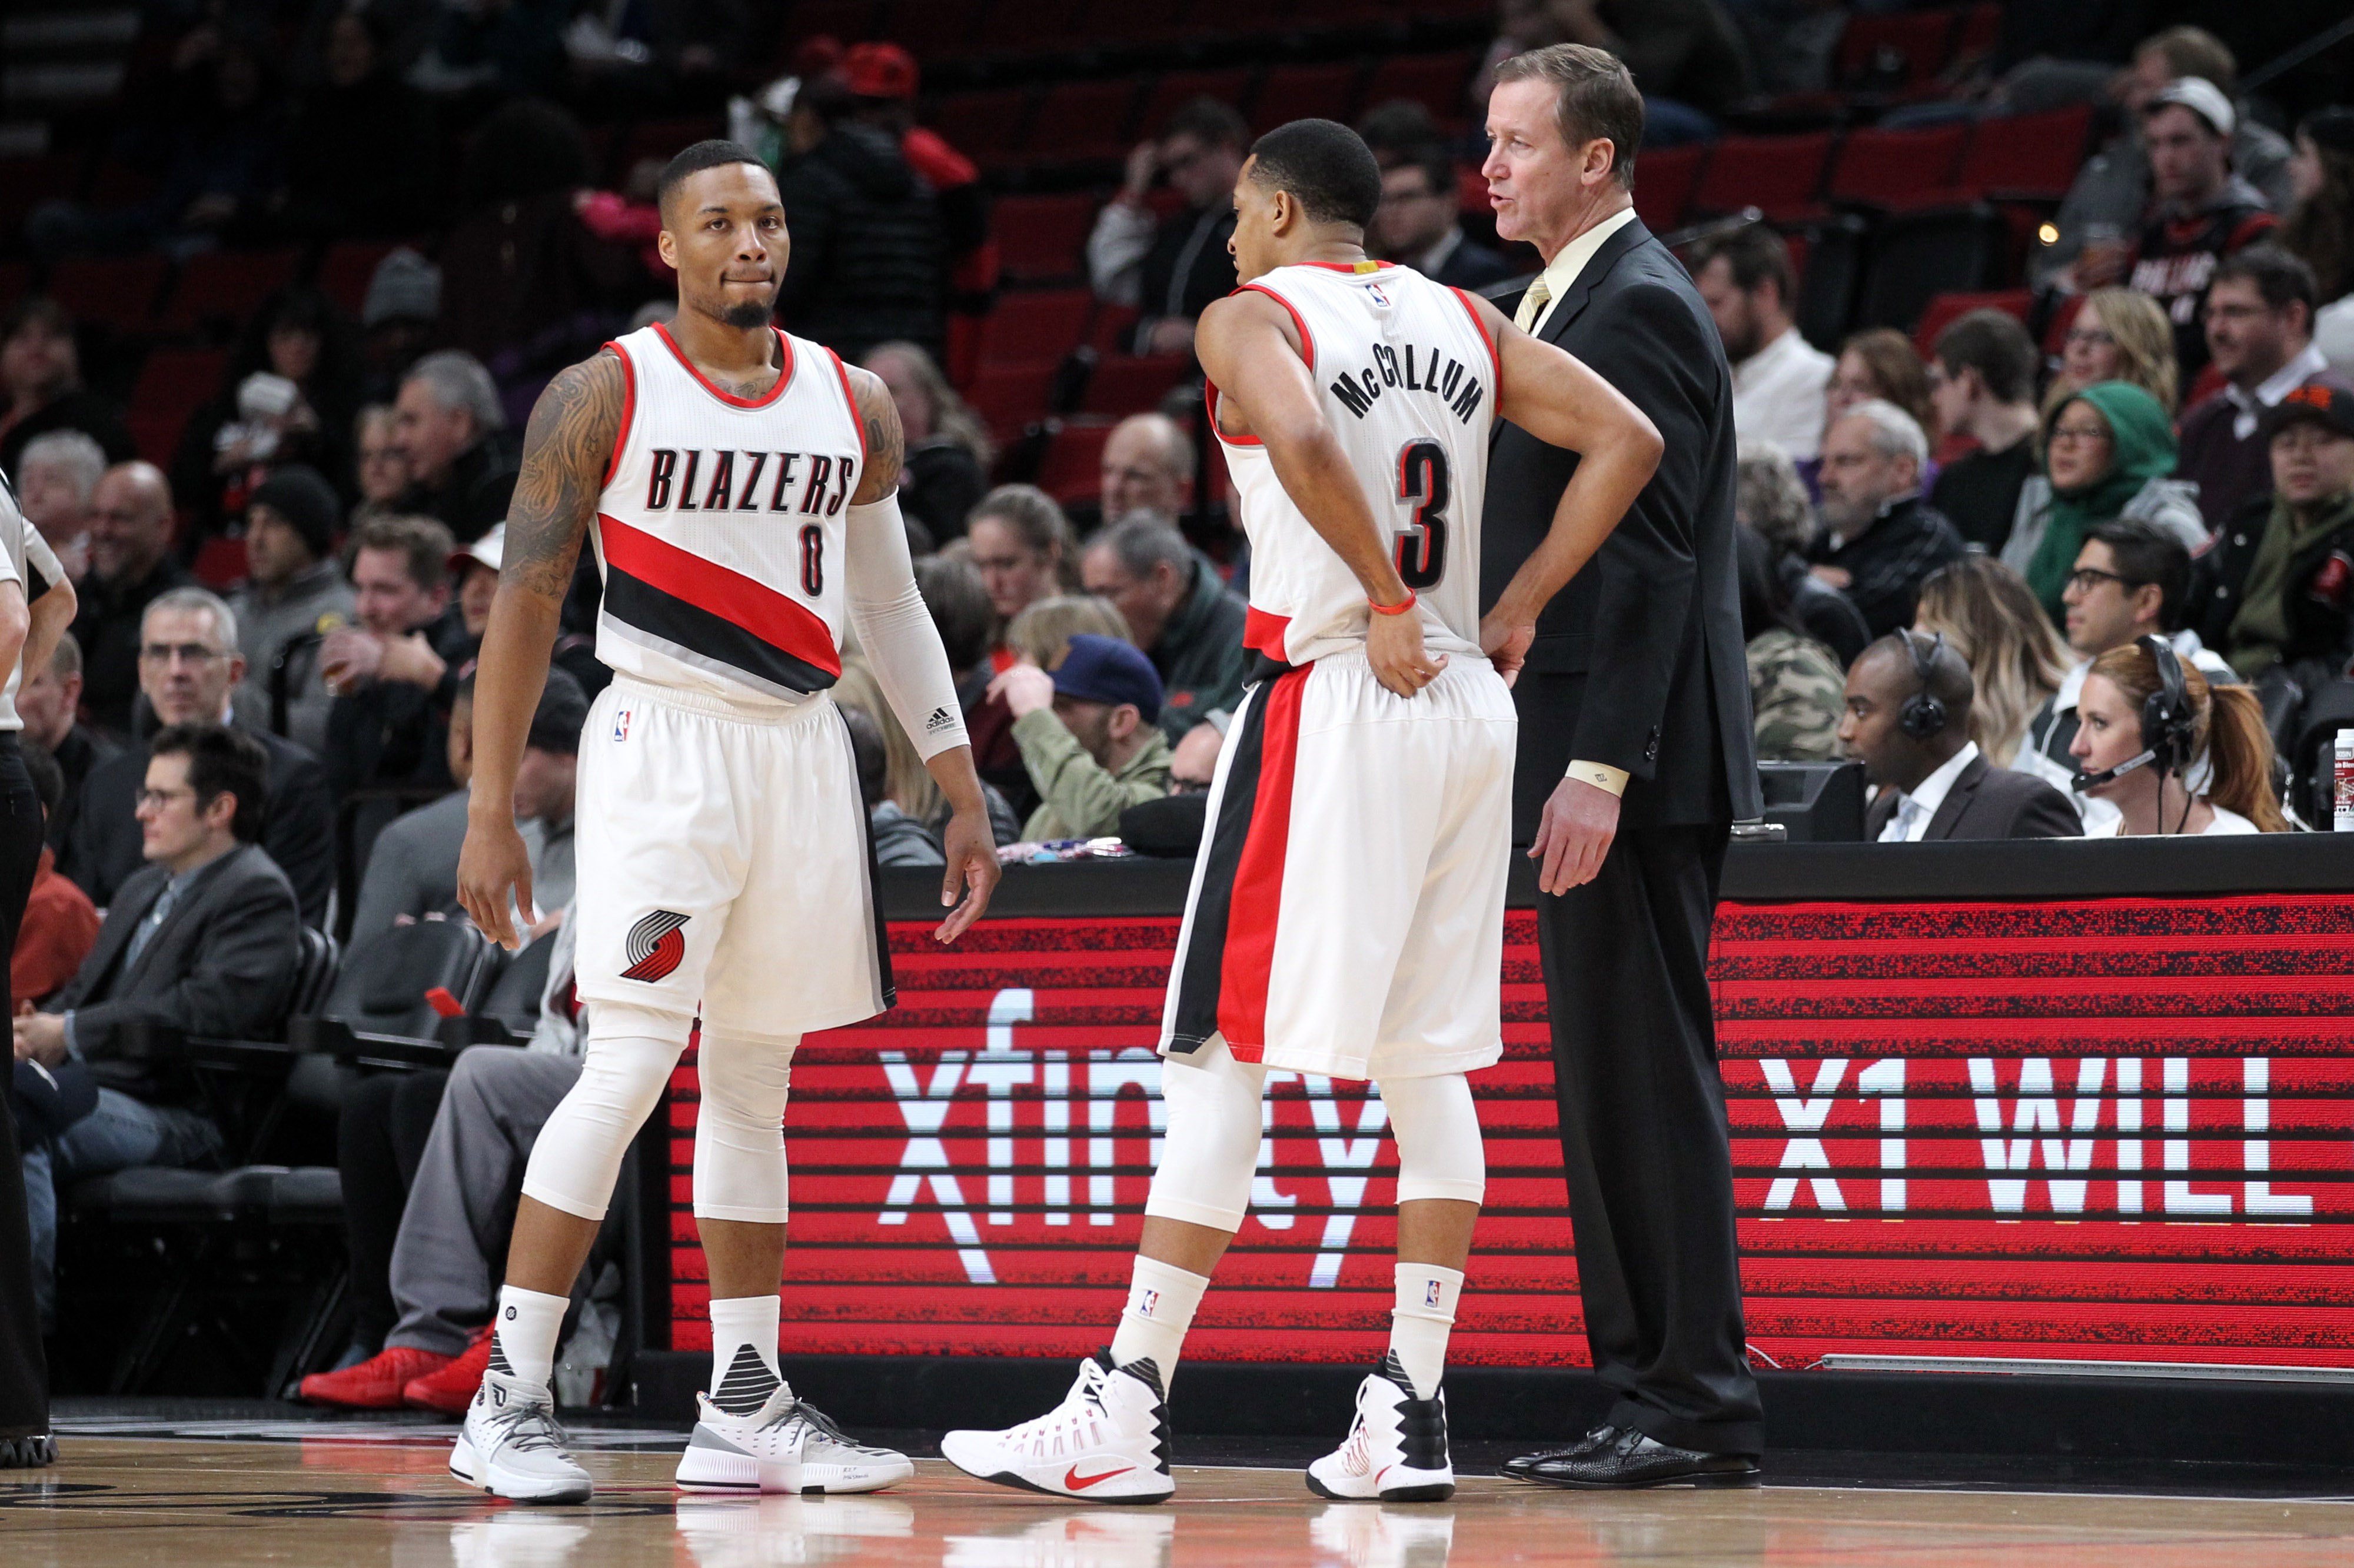 NBA: Who Gets 8th In The West, The Nuggets Or Blazers?